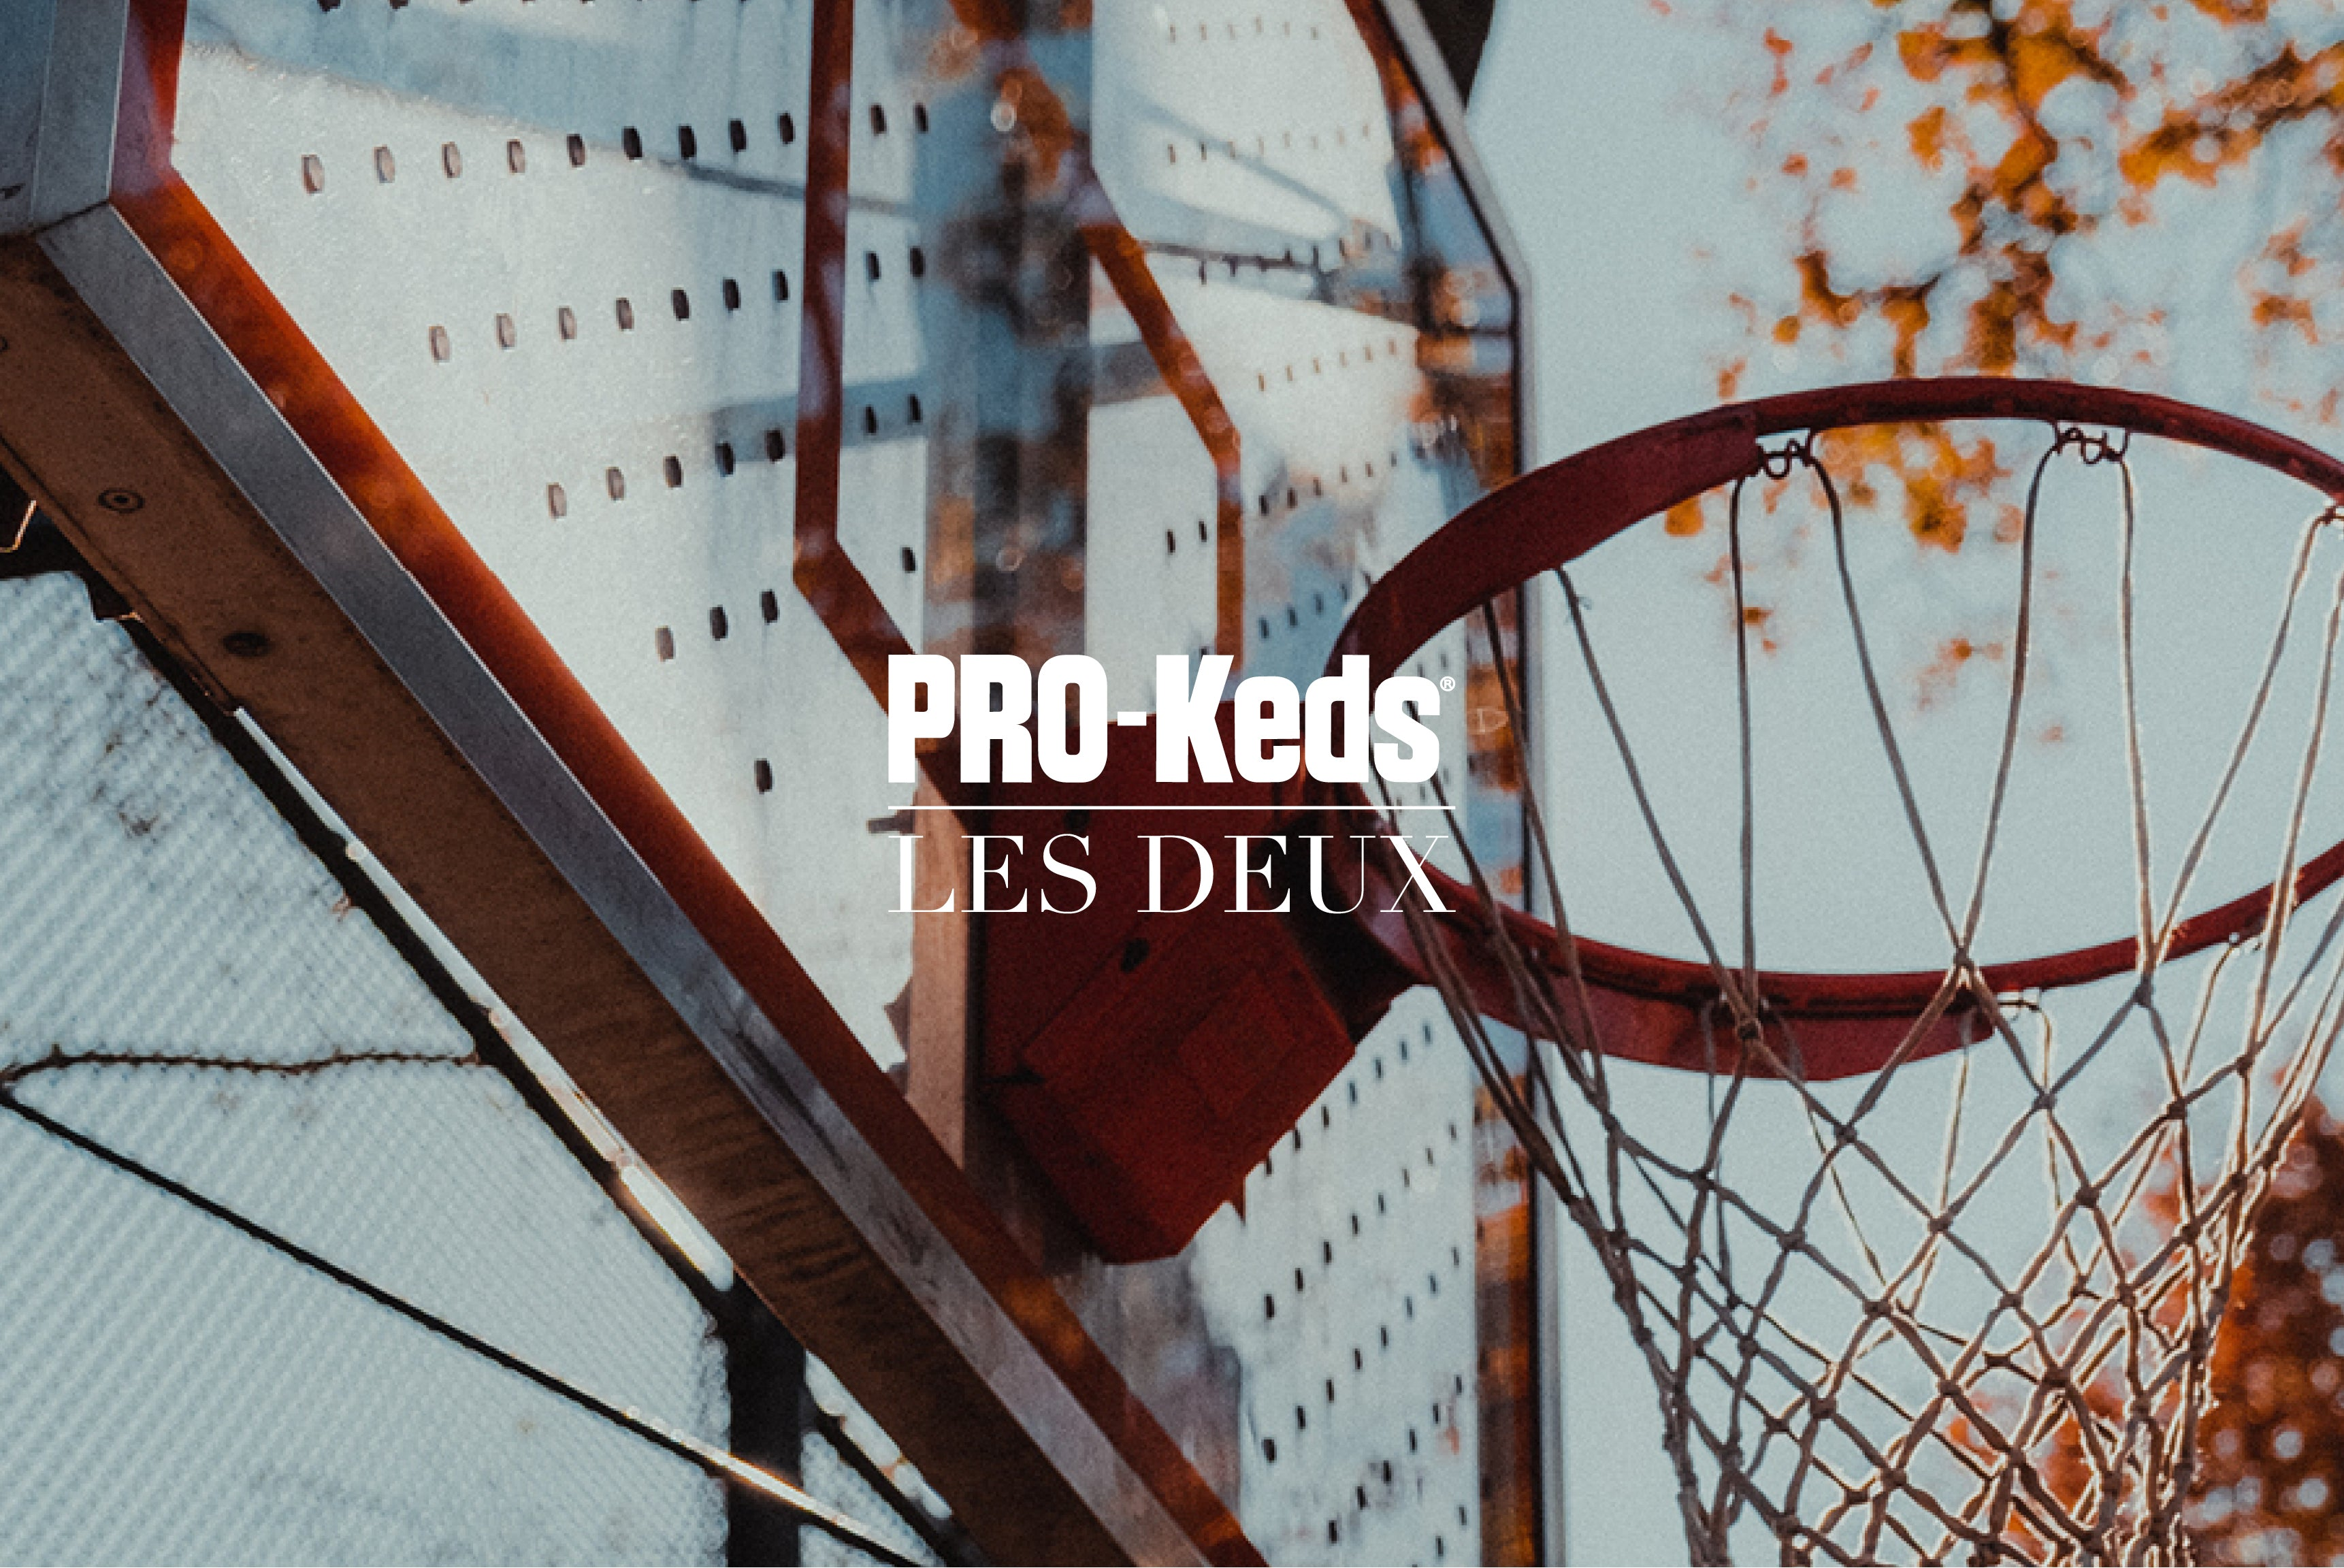 PRO-Keds x Les Deux in Minimalistic Collaboration